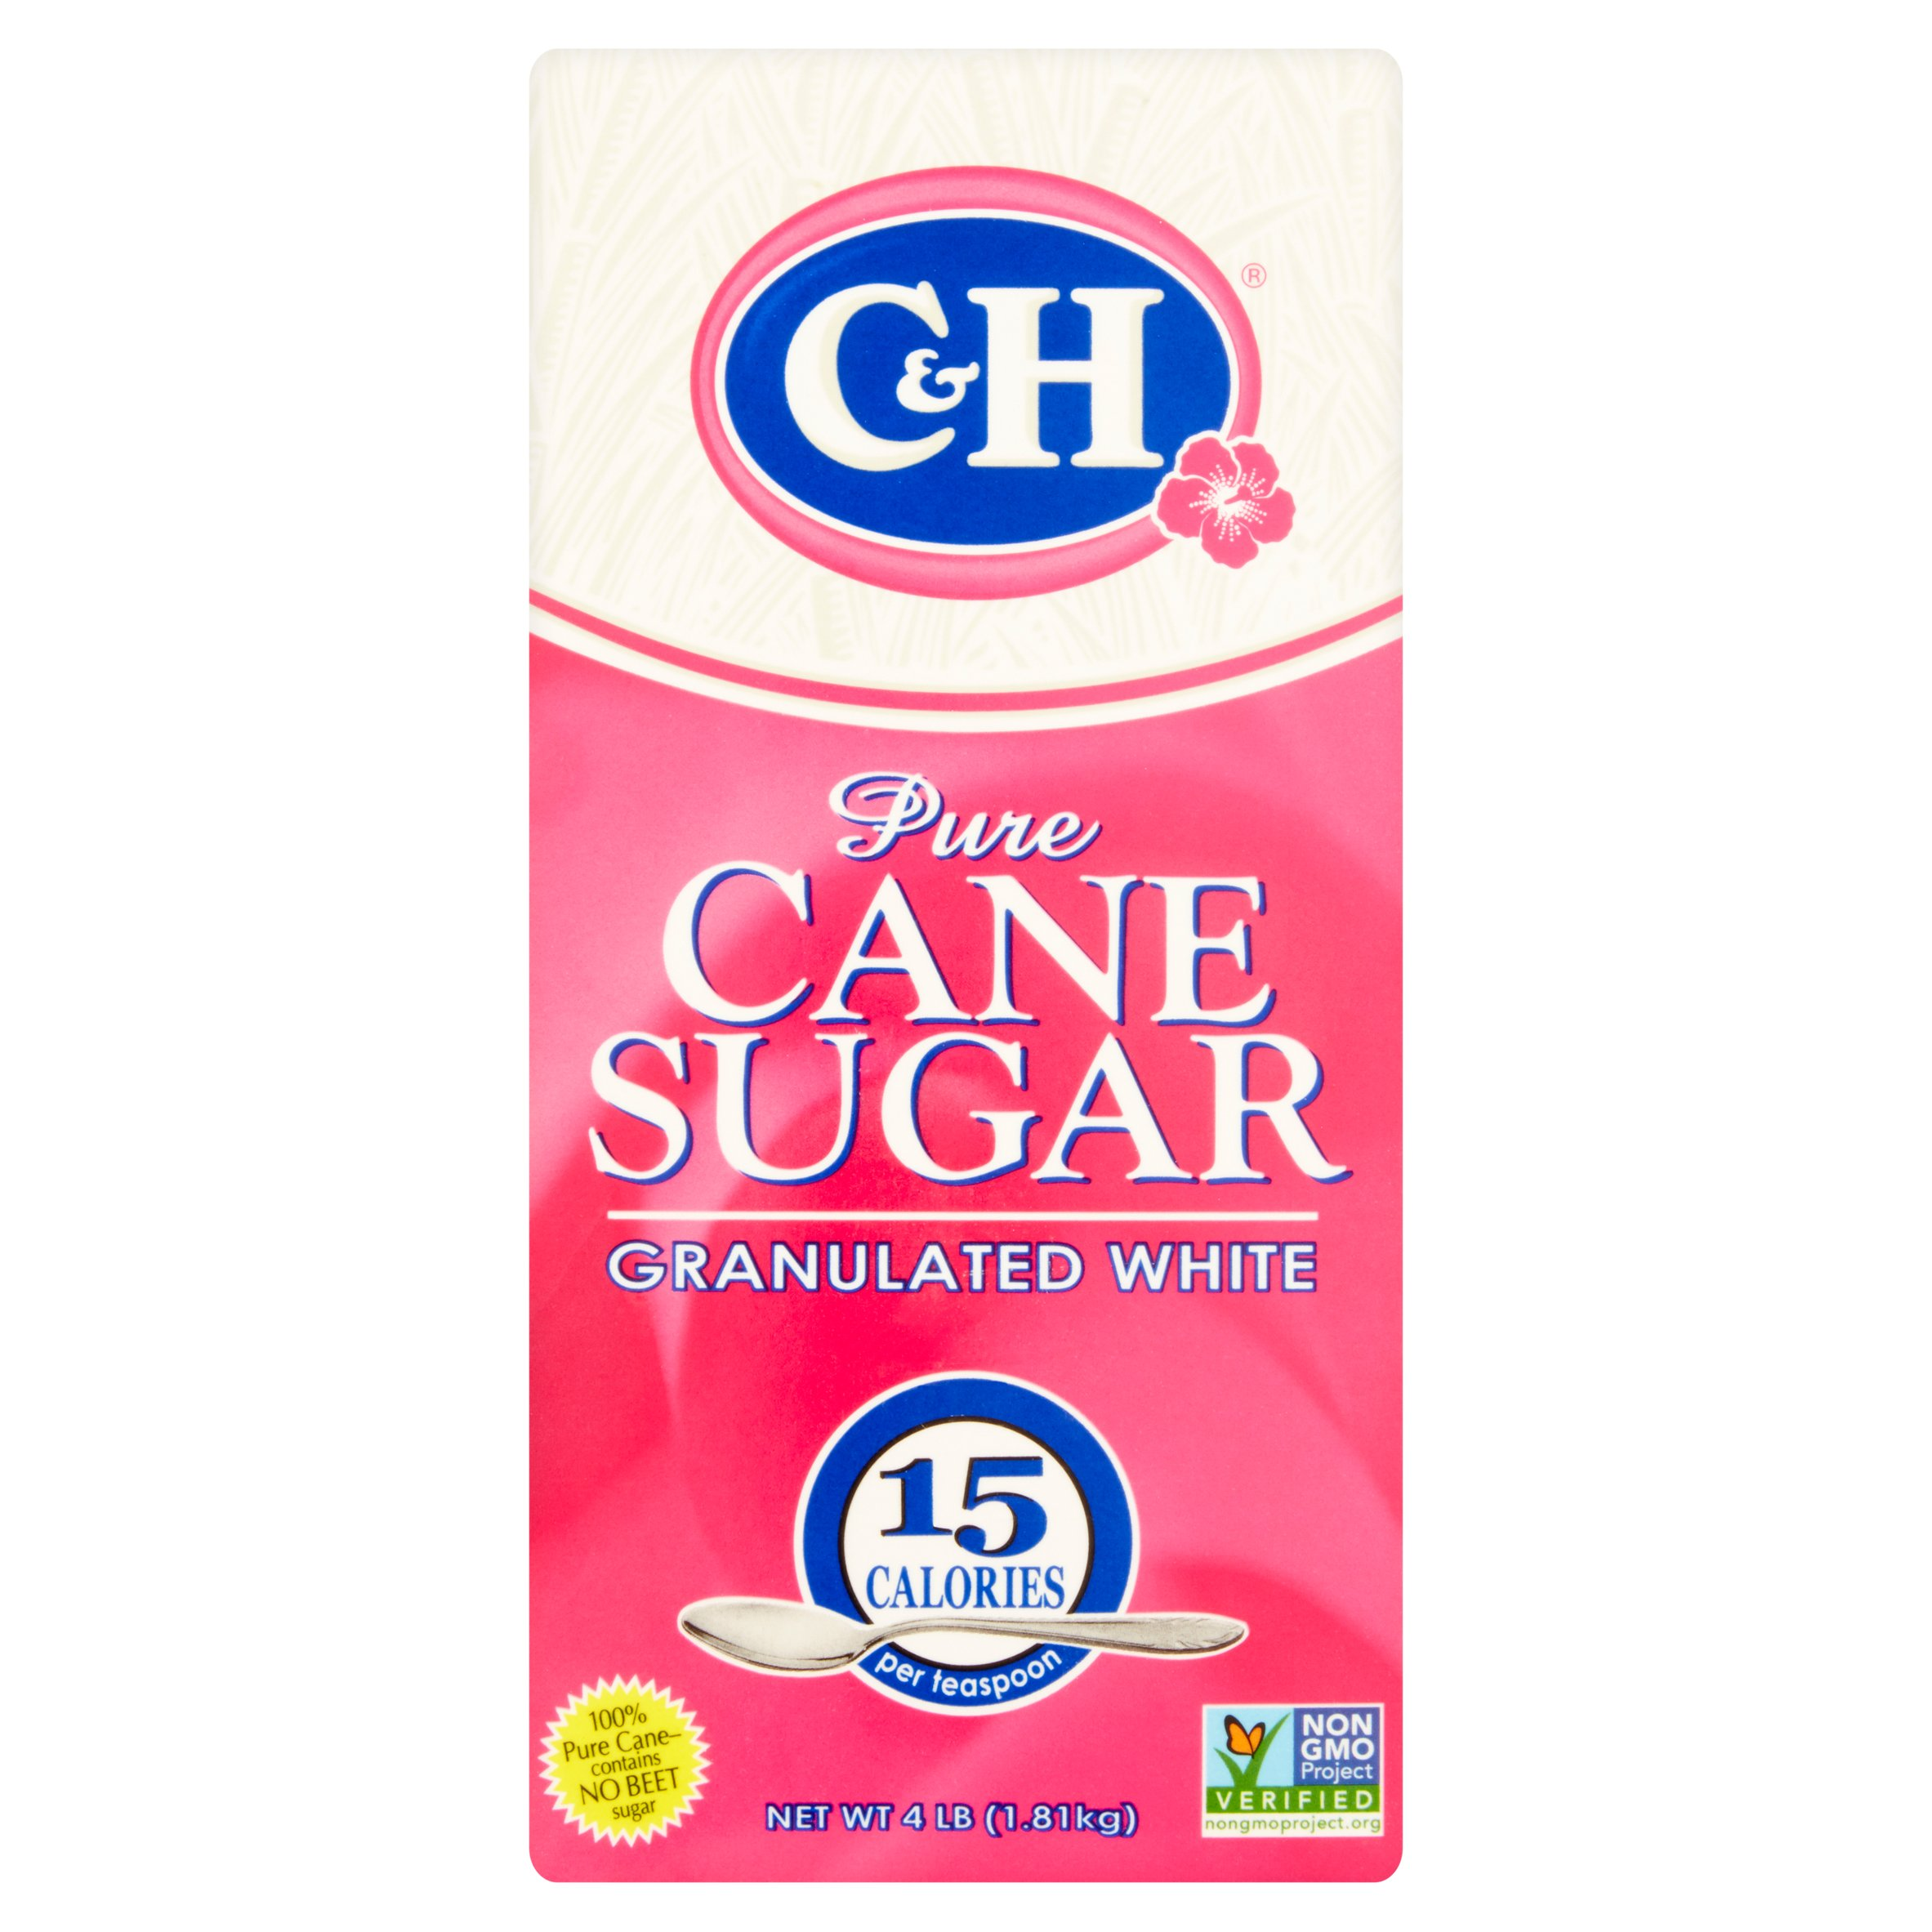 C&H Pure Cane Sugar Granulated White 4 lb Carton